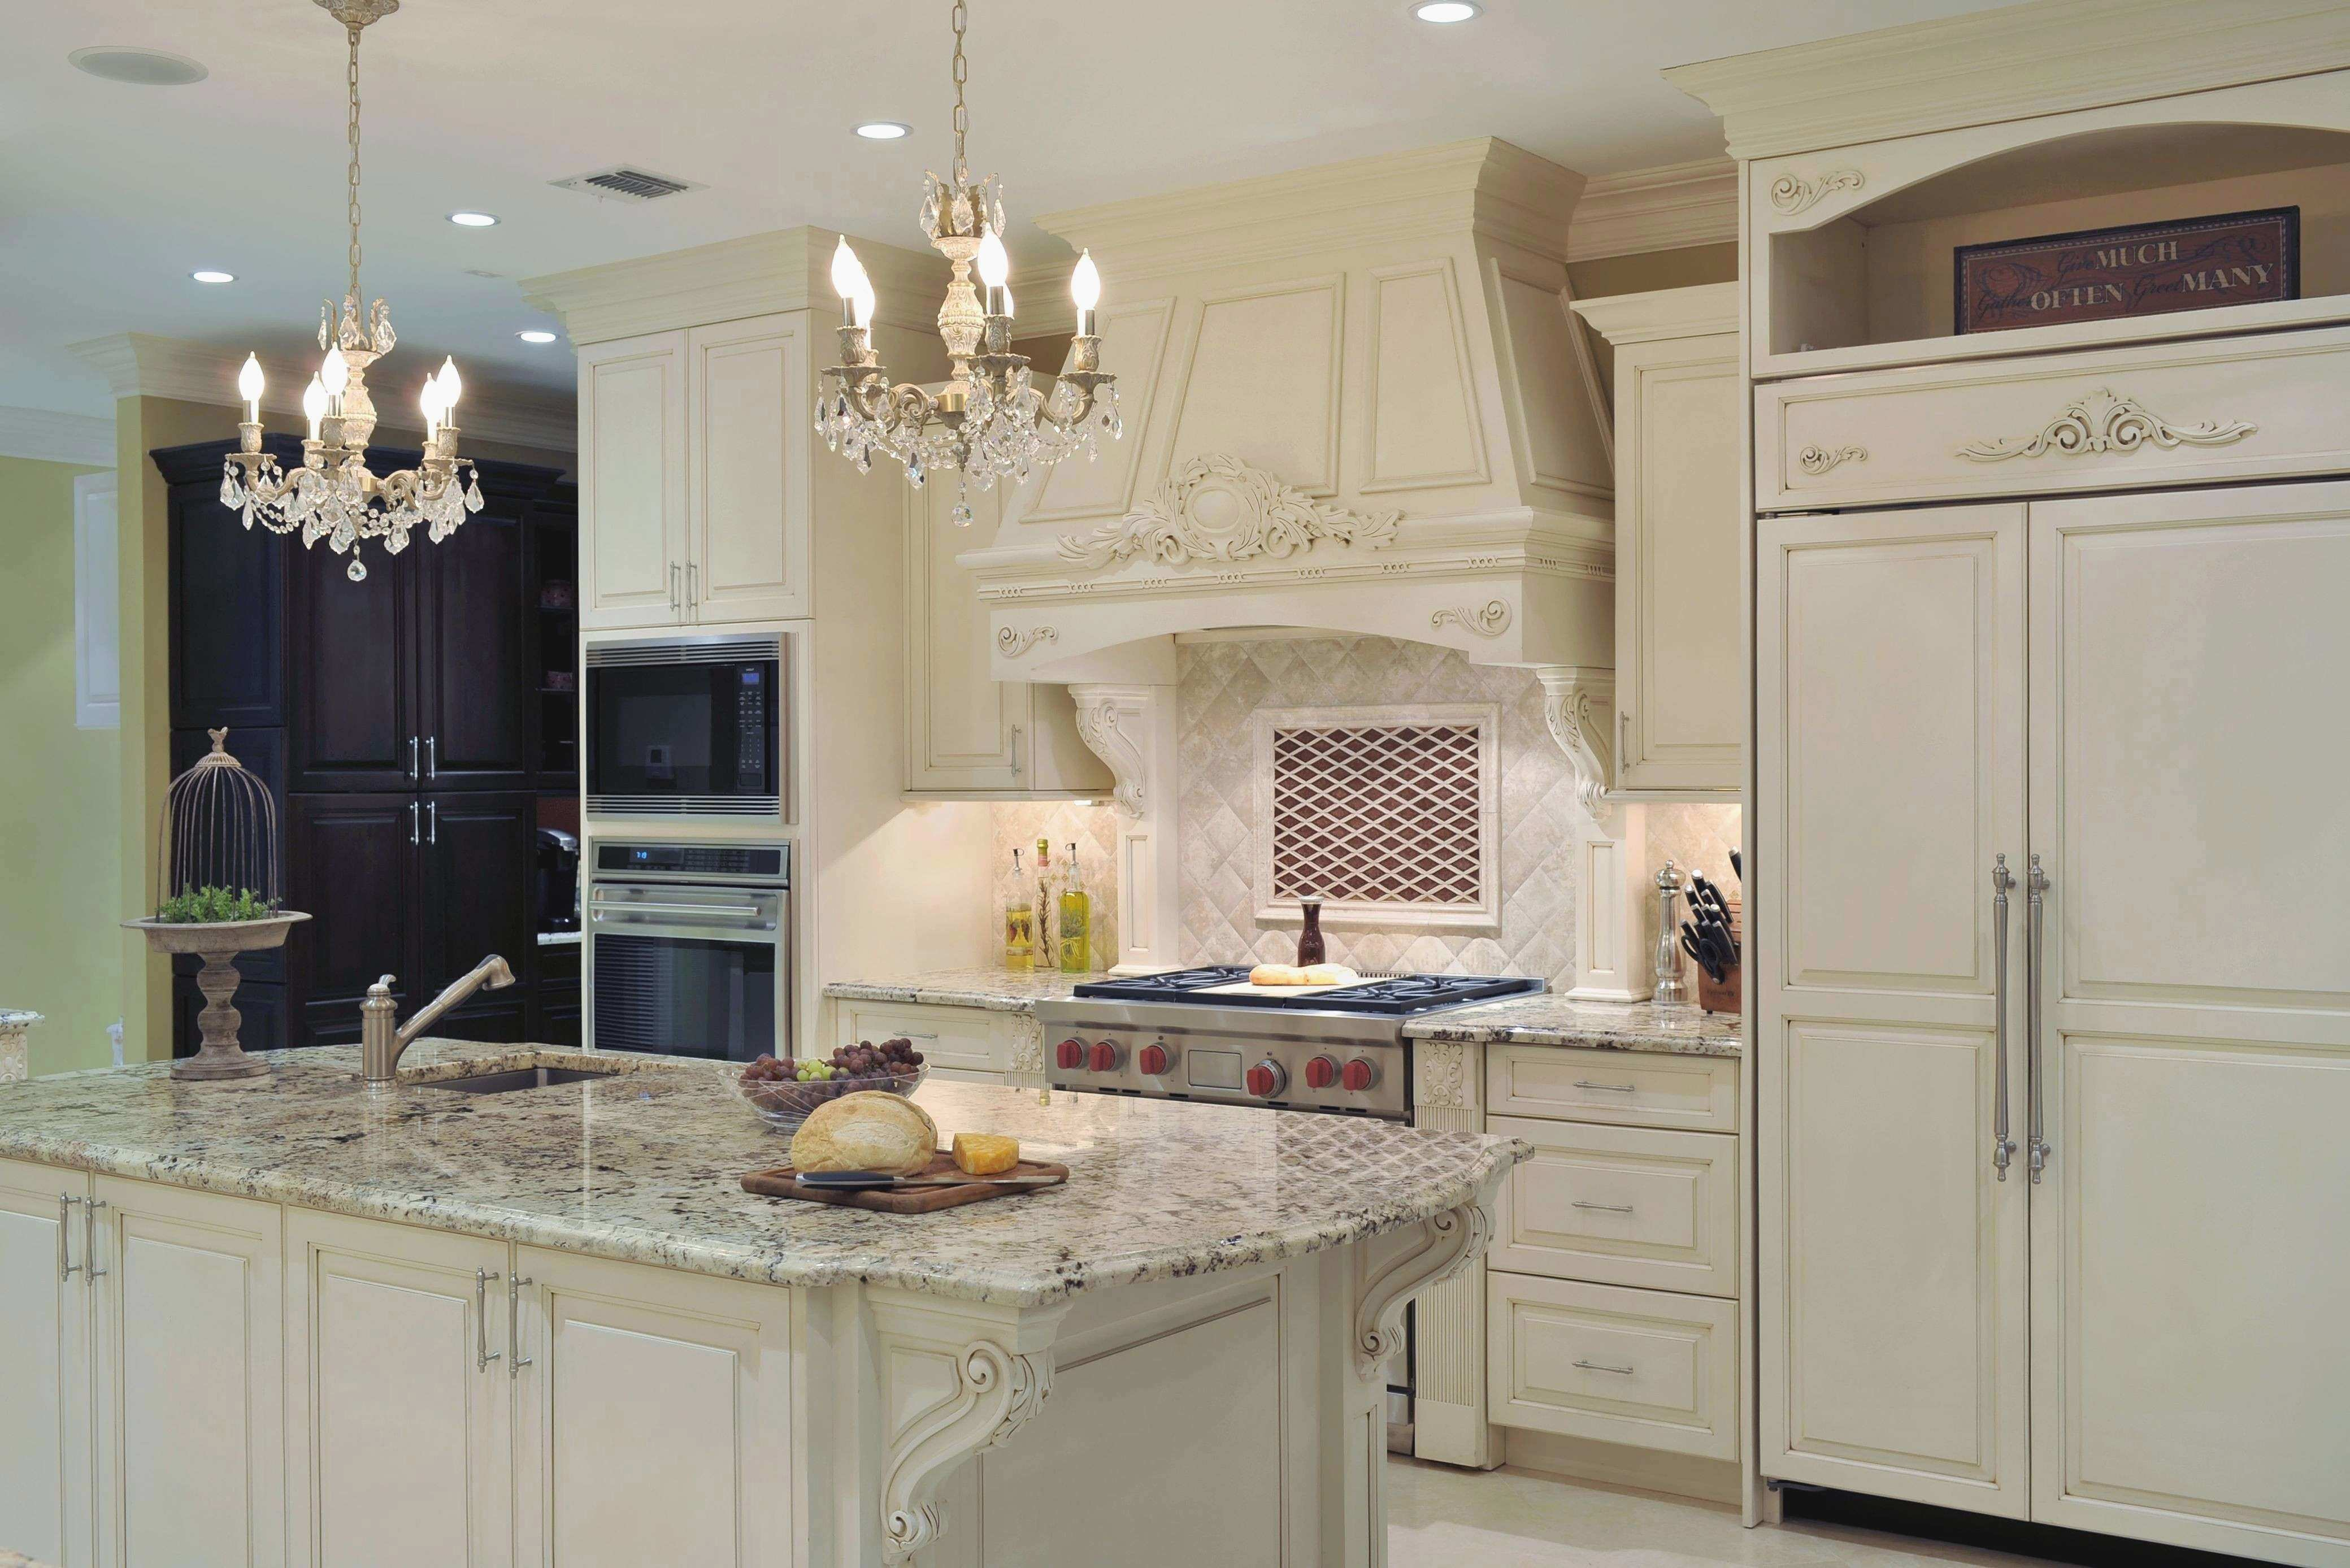 31 Beautiful White Kitchen Wall Cabinets s Home Ideas